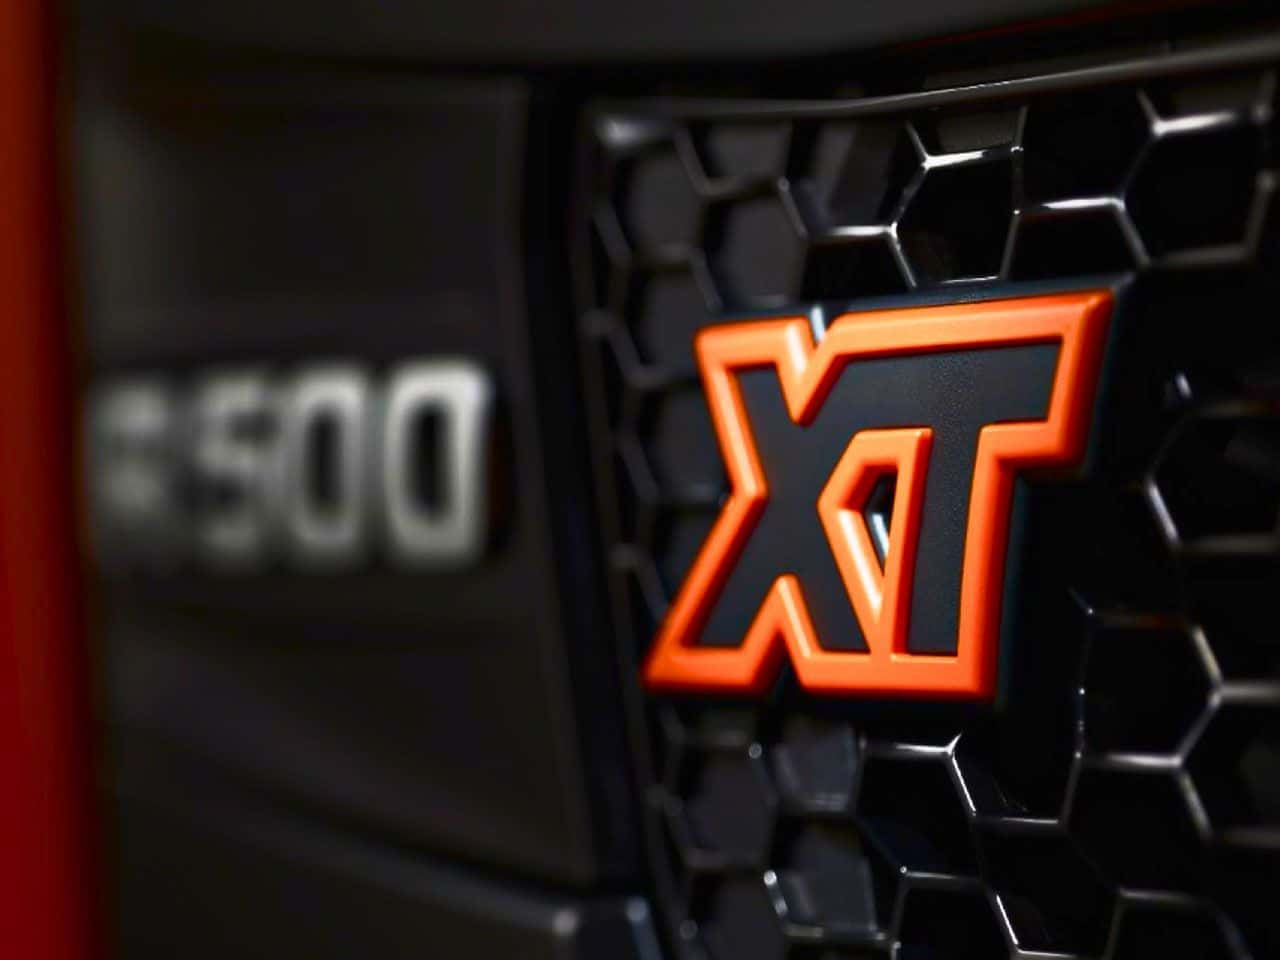 Scania XT Grille badge